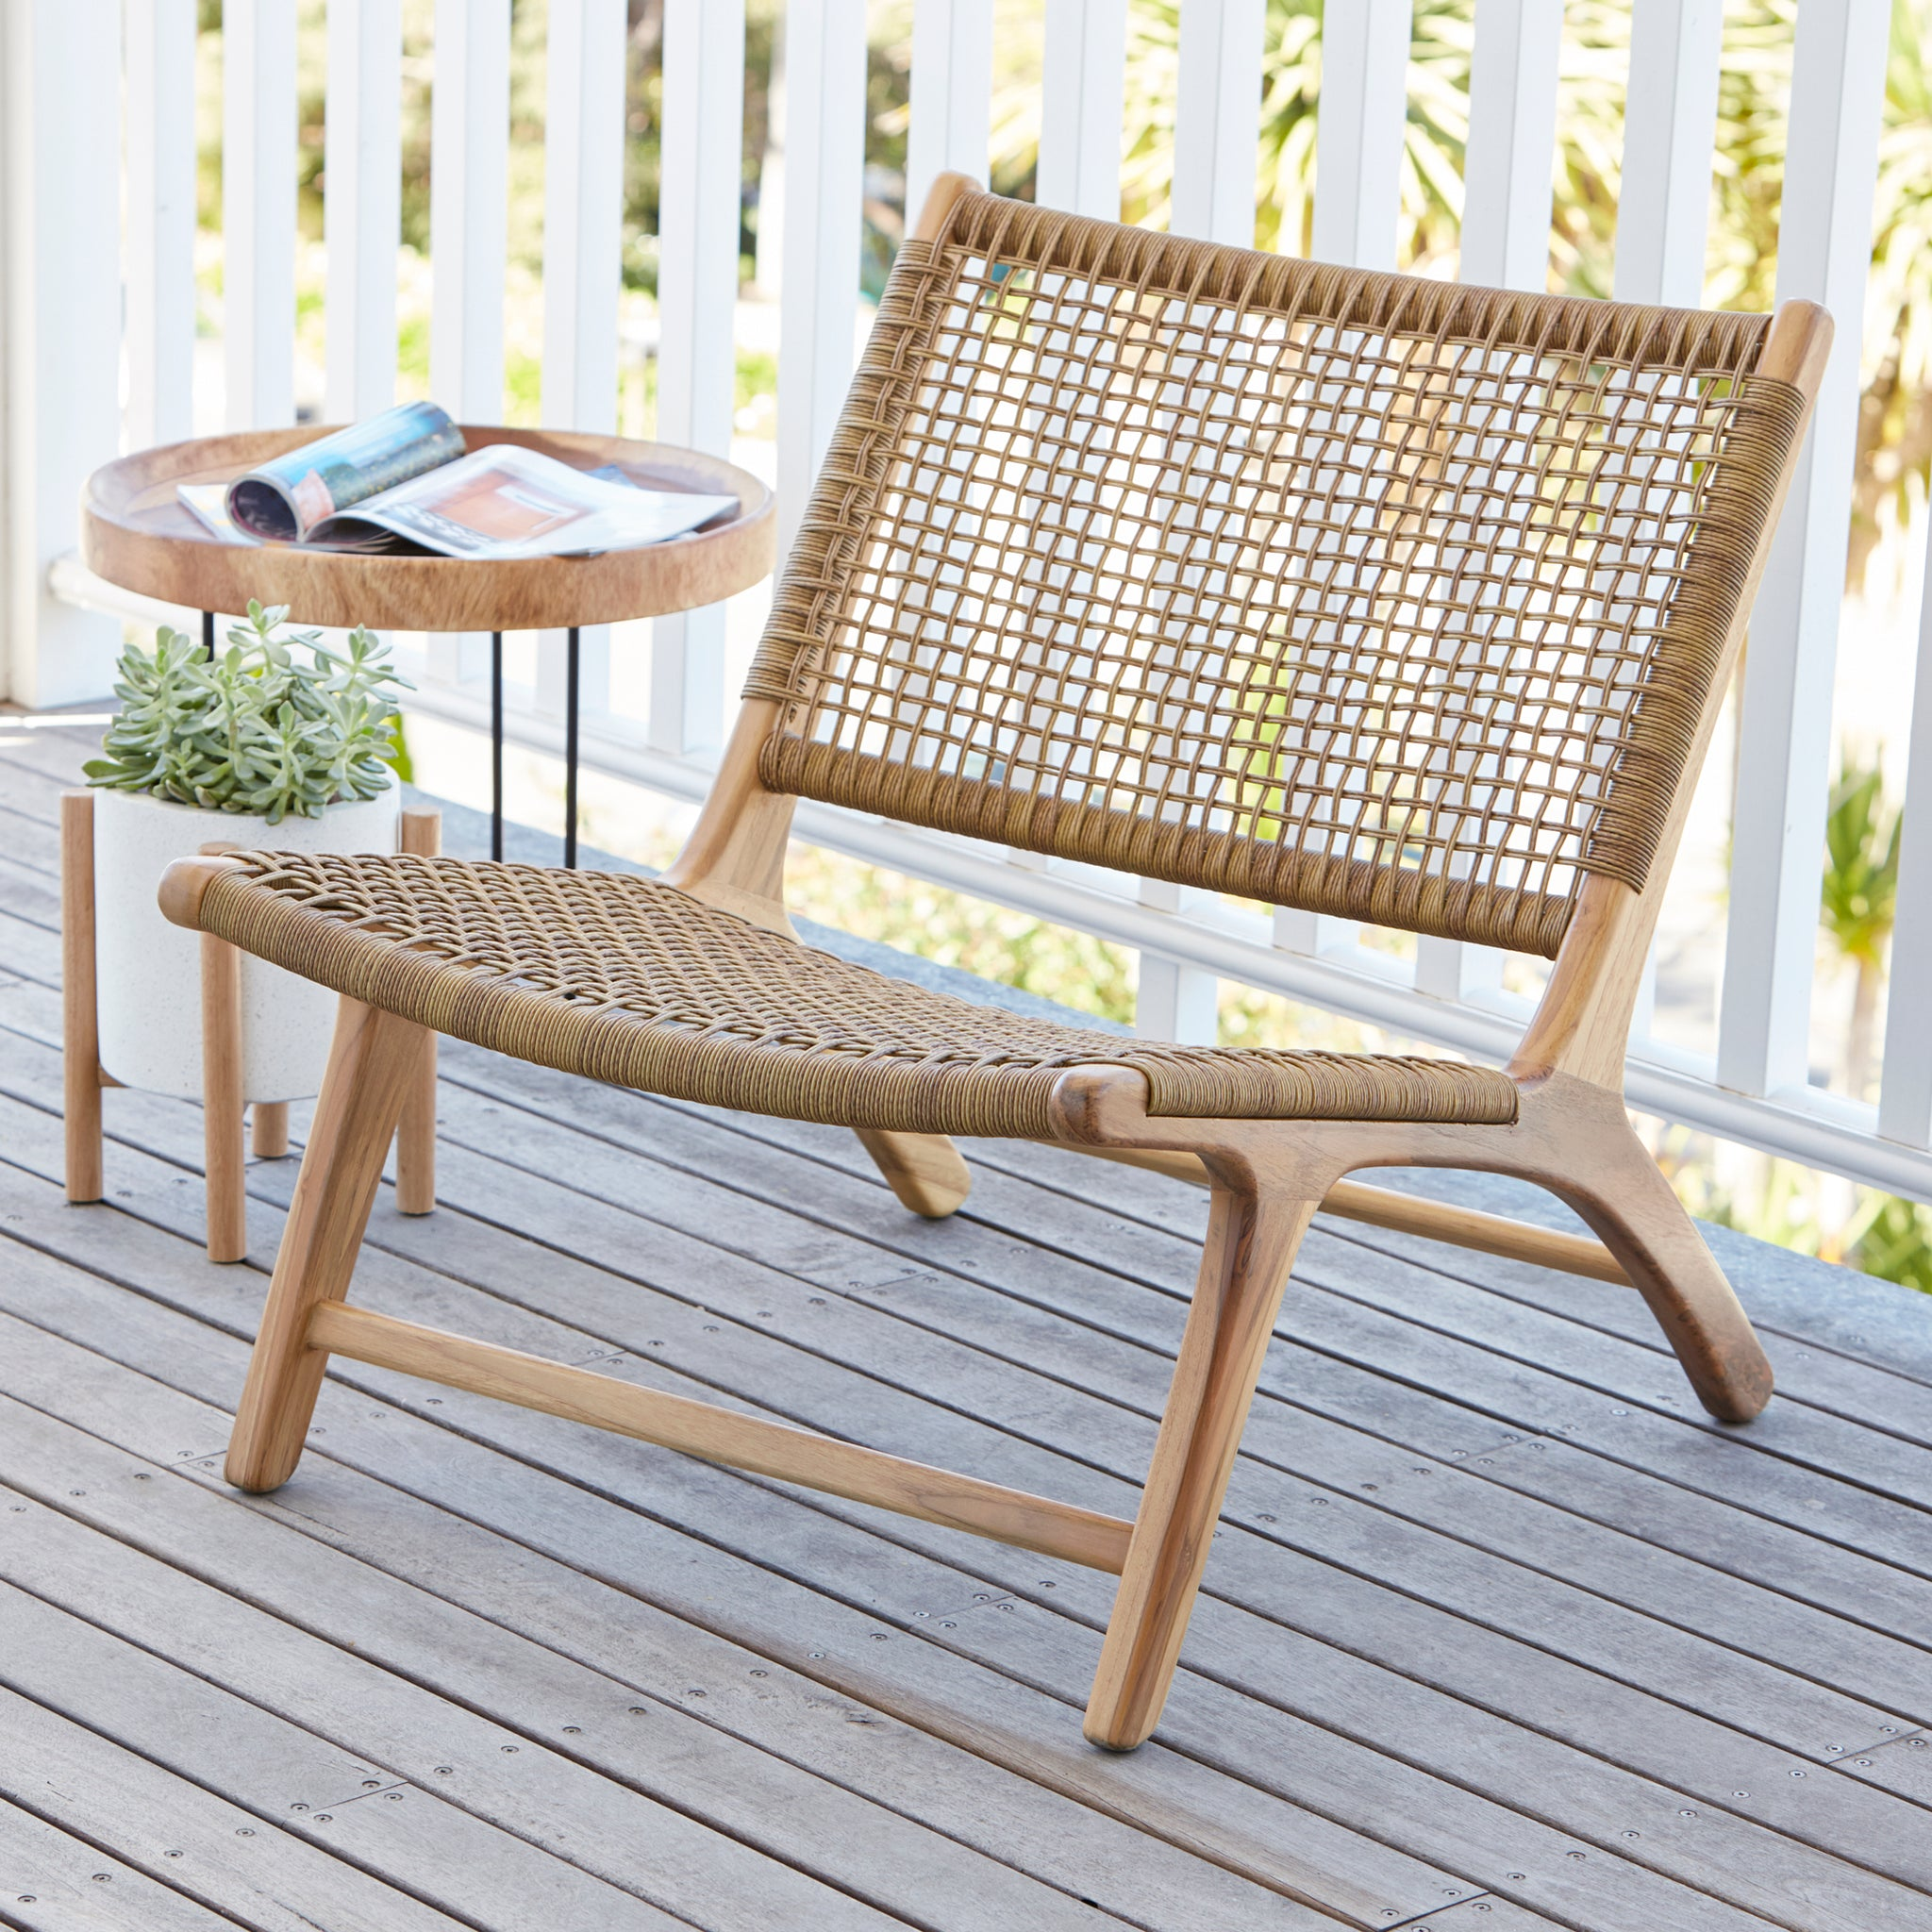 Sienna Low Chair   SYNTHETIC RATTAN